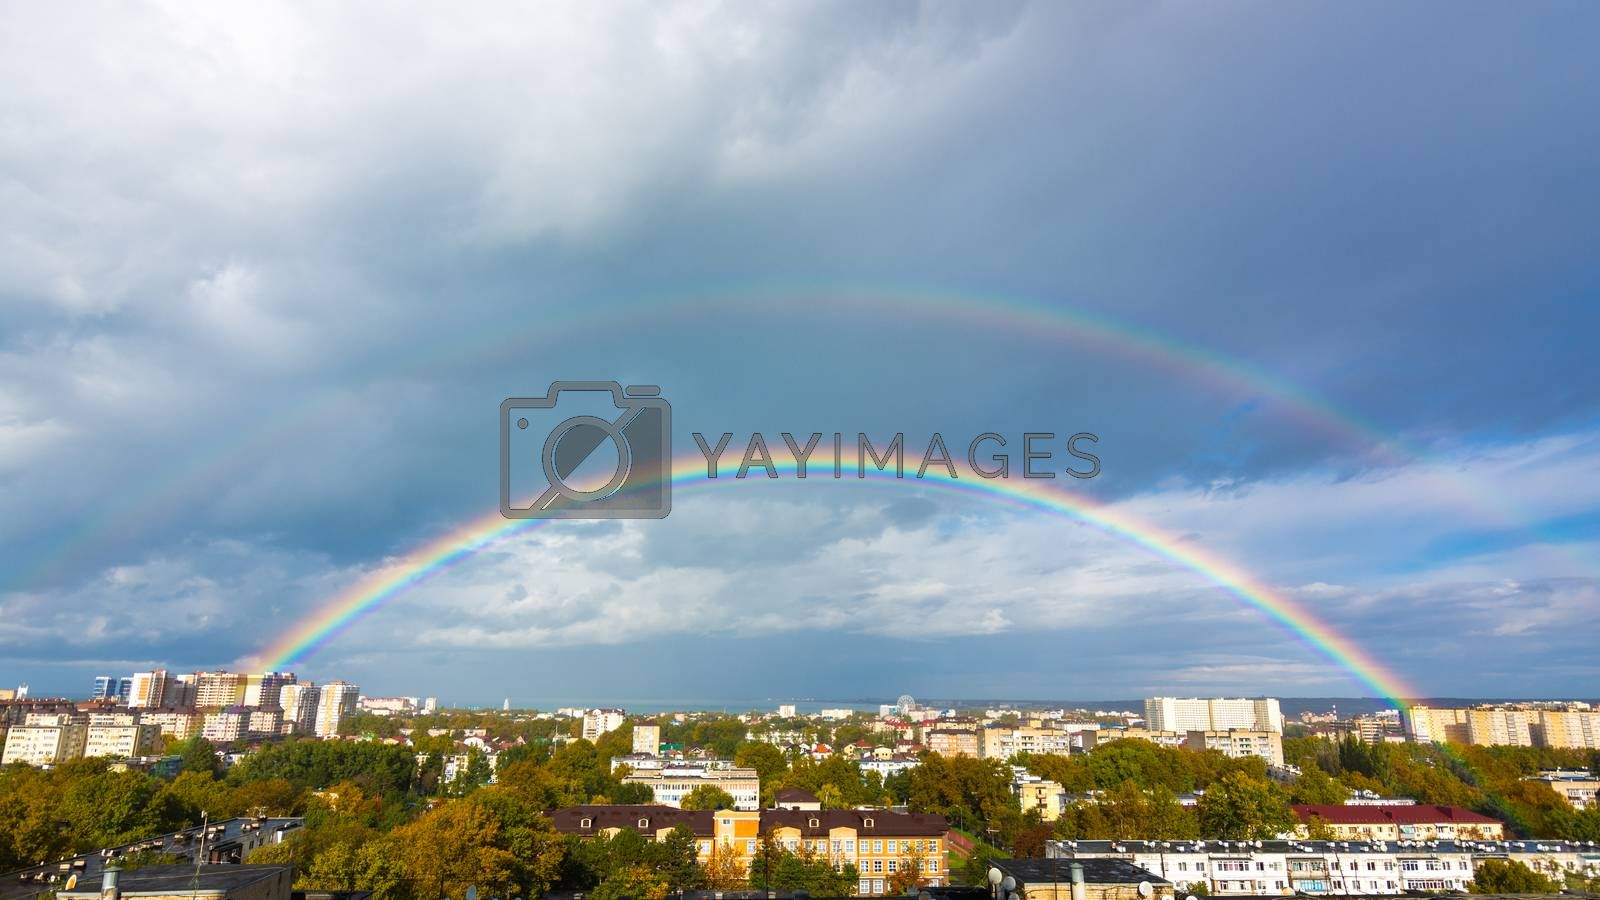 Double rainbow in the sky over the roofs of the resort city of Anapa, Russia